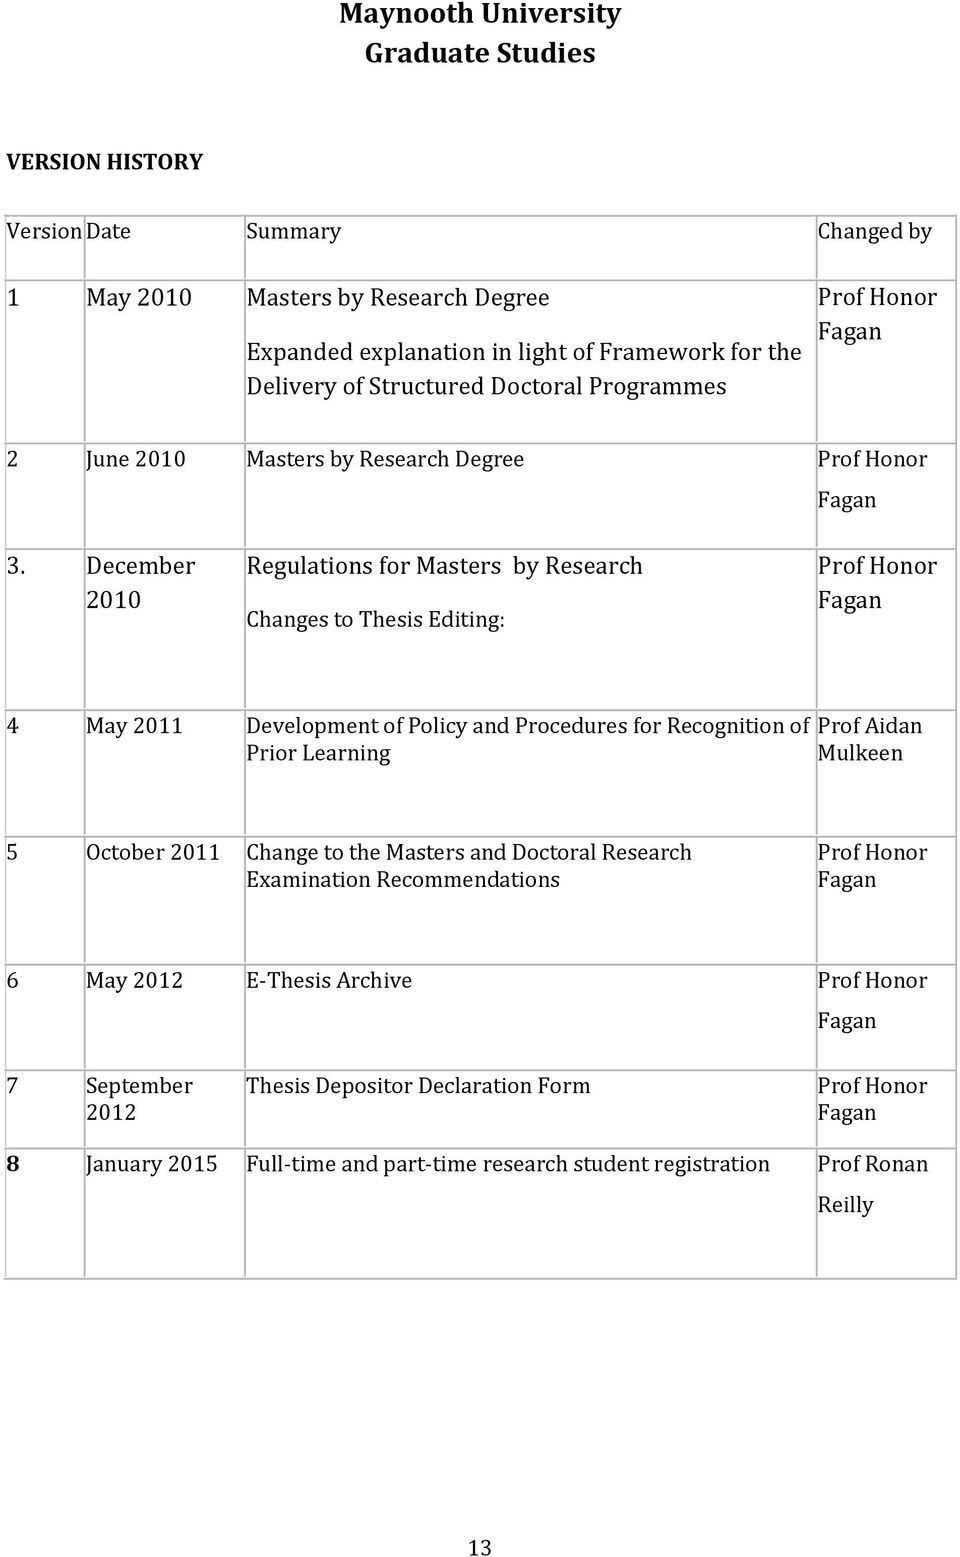 December 2010 Regulations for Masters by Research Changes to Thesis Editing: Prof Honor Fagan 4 May 2011 Development of Policy and Procedures for Recognition of Prior Learning Prof Aidan